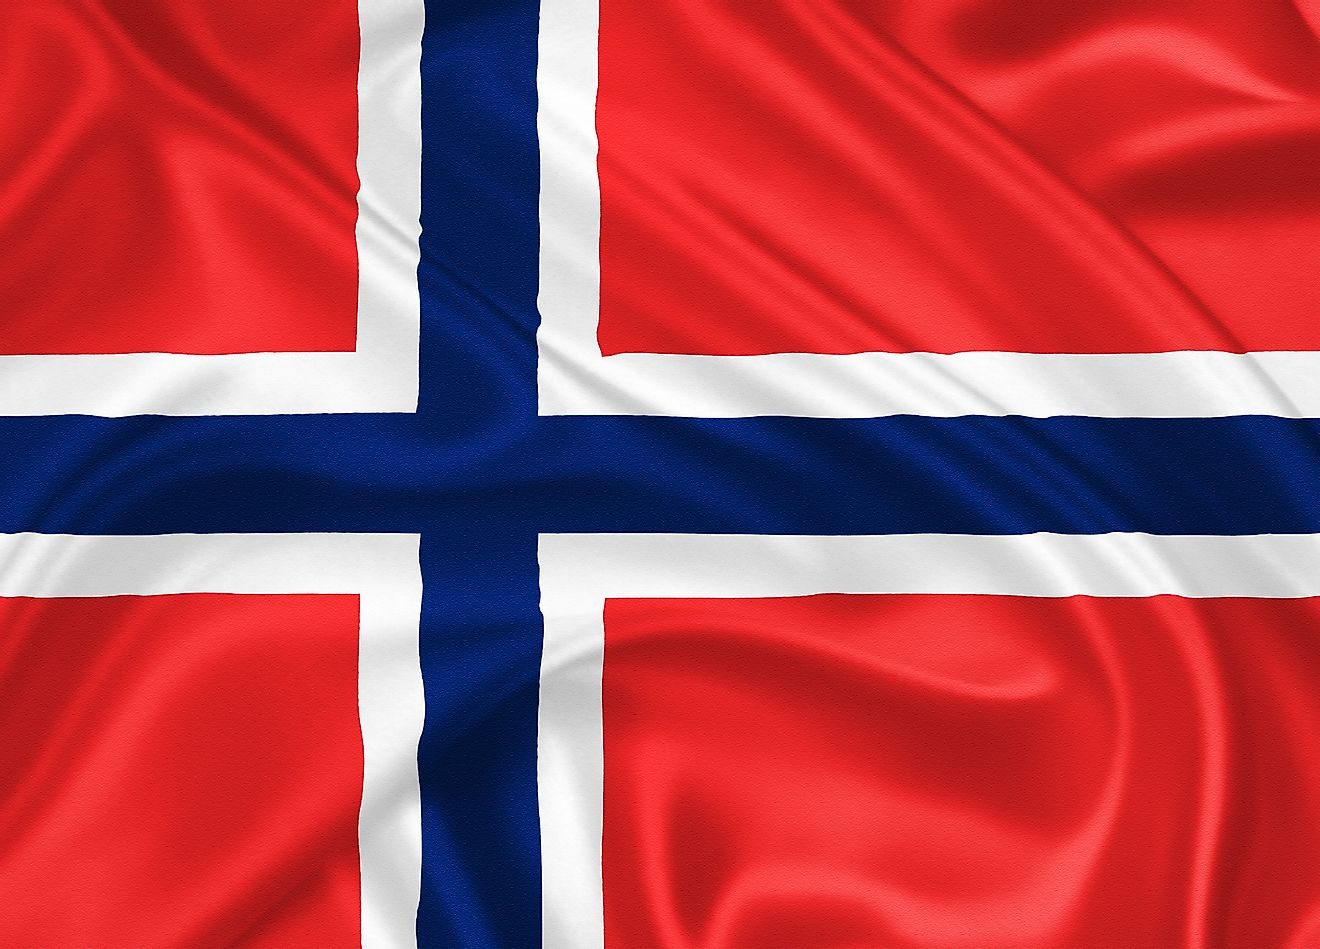 The official flag of the Kingdom of Norway.